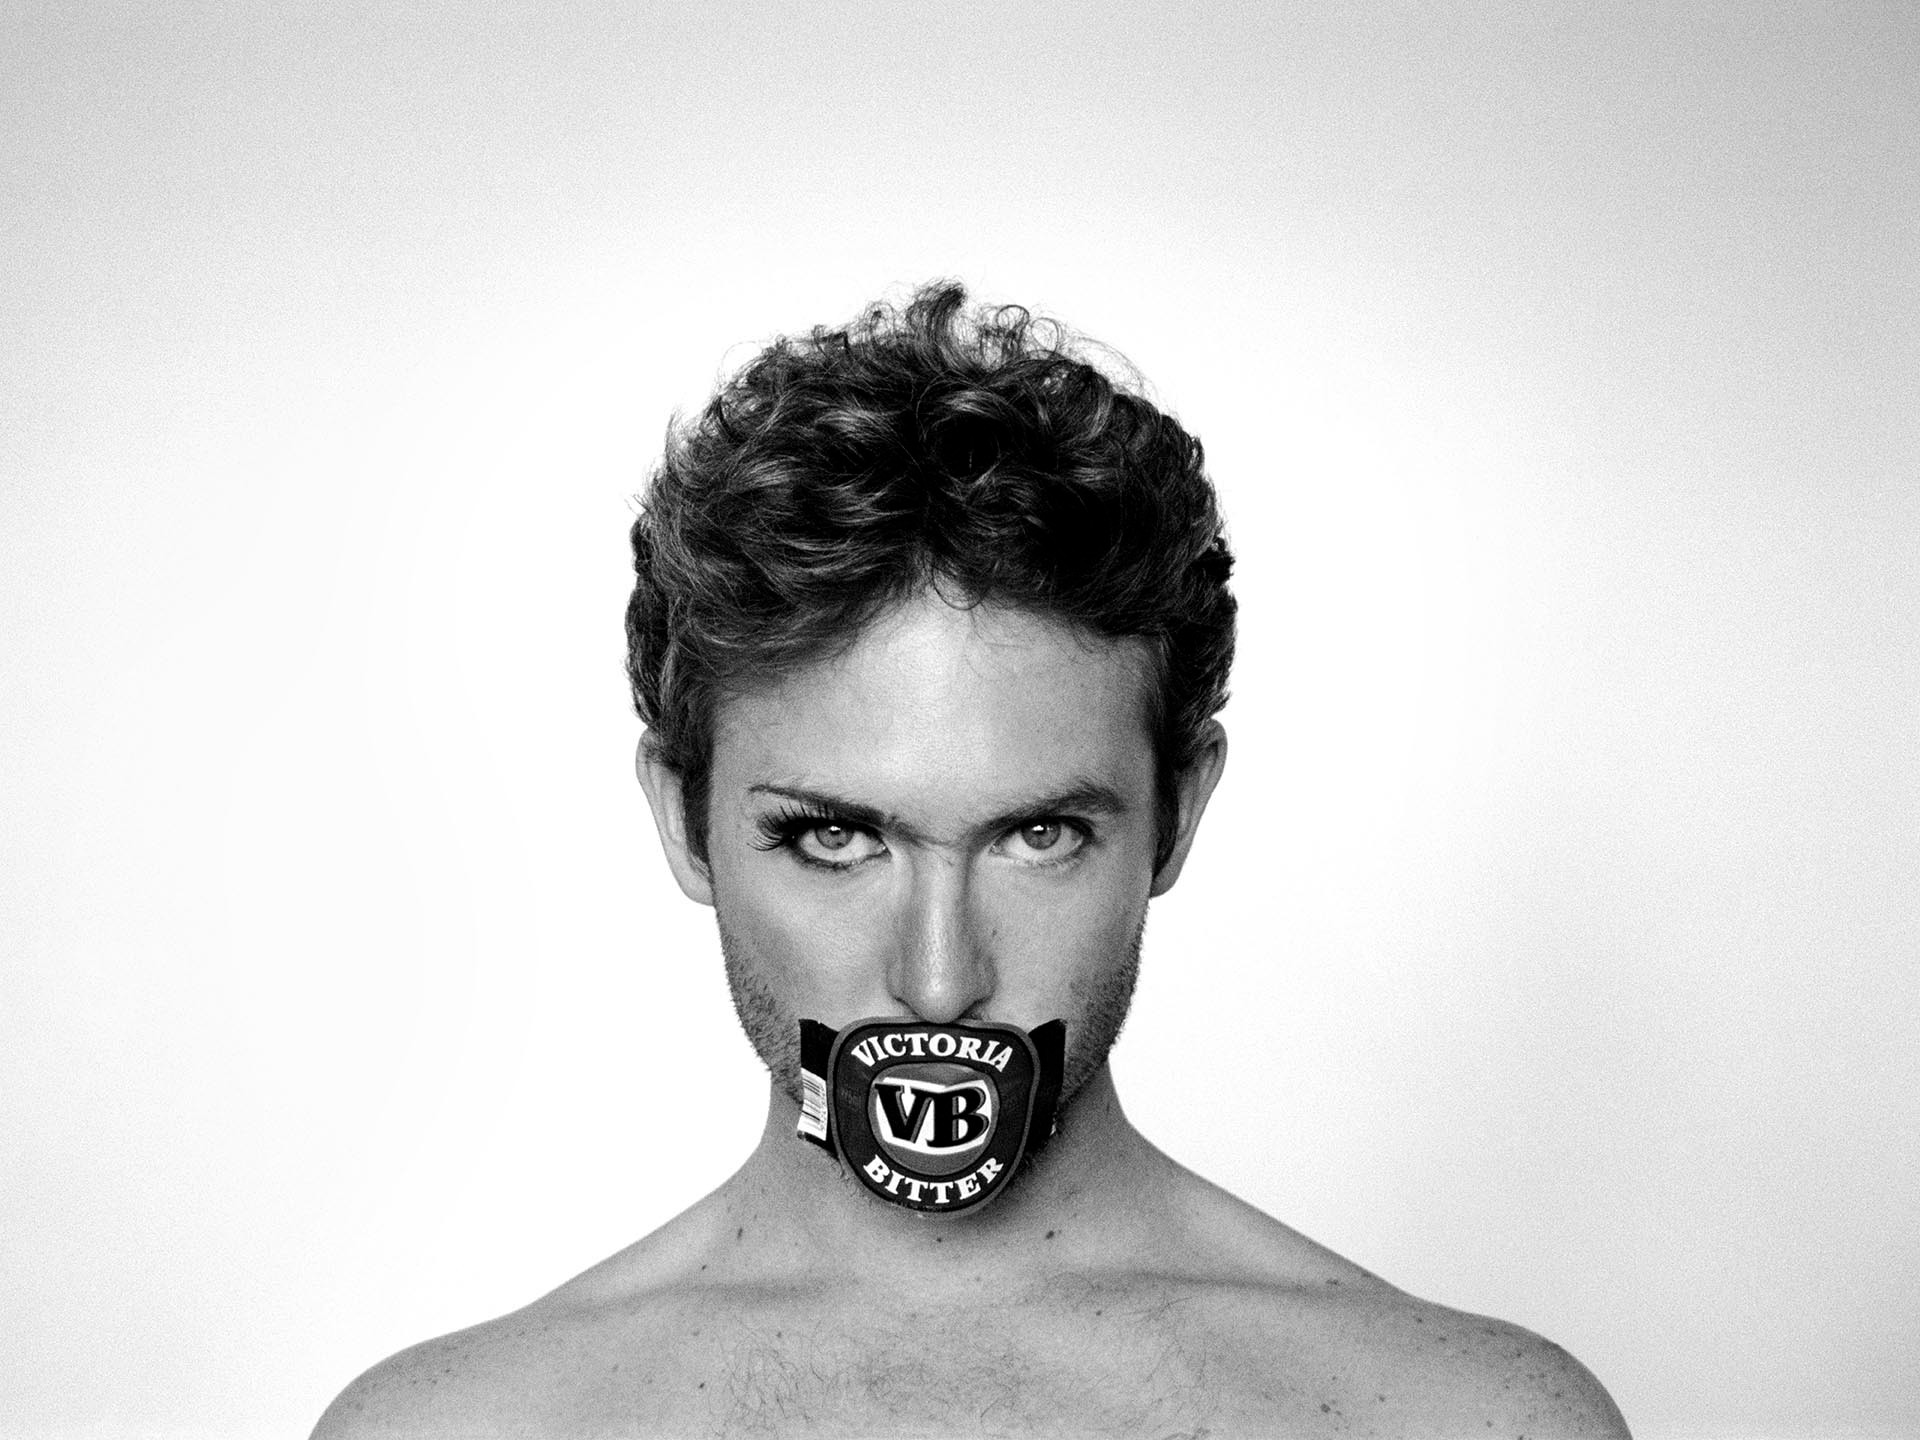 Liam Benson VB Sticker, 2005 61x91cm photographed by Naomi Oliver